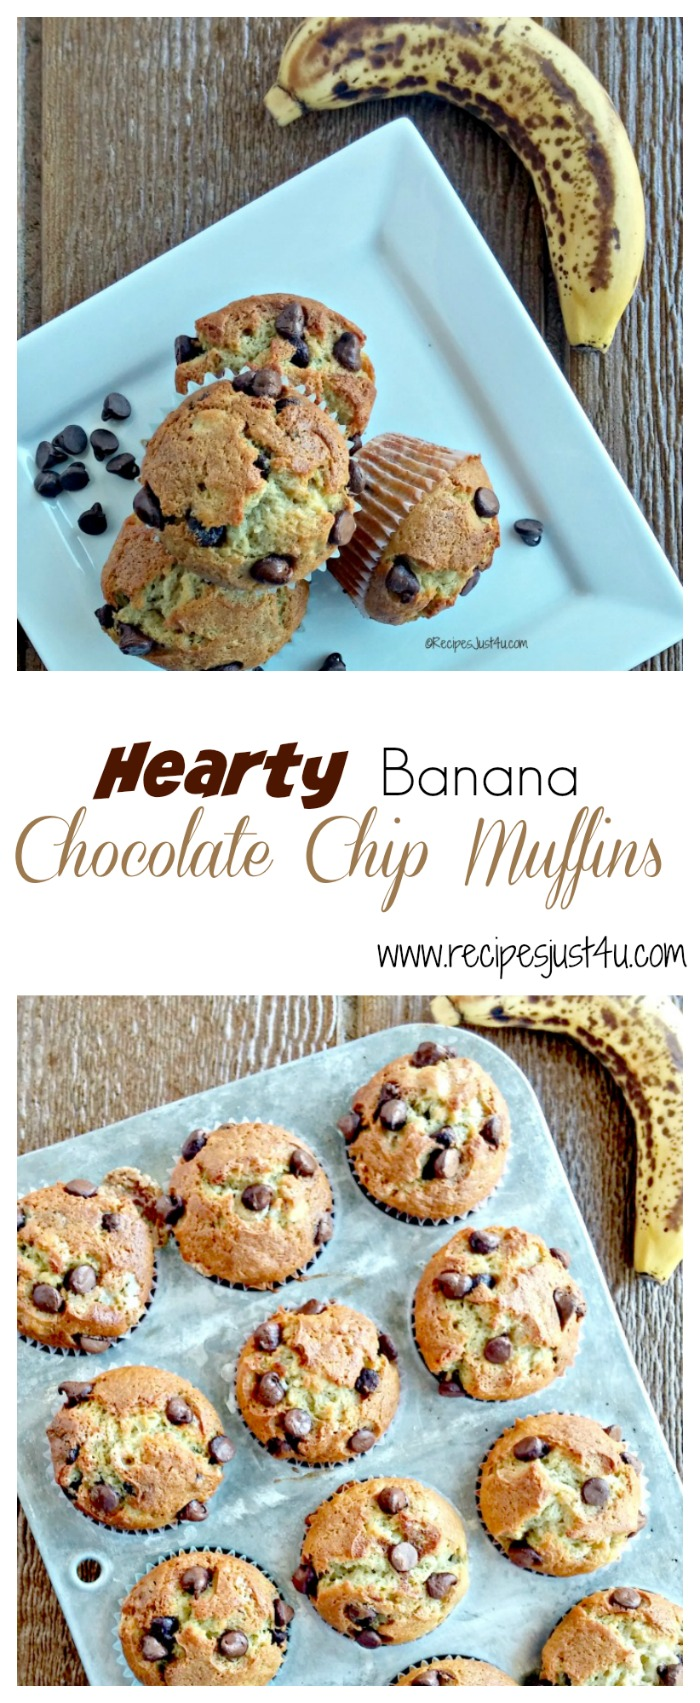 """These hearty banana chocolate chip muffins are the perfect """"on the go"""" breakfast. So easy to make and delicious! recipesjust4u.com"""